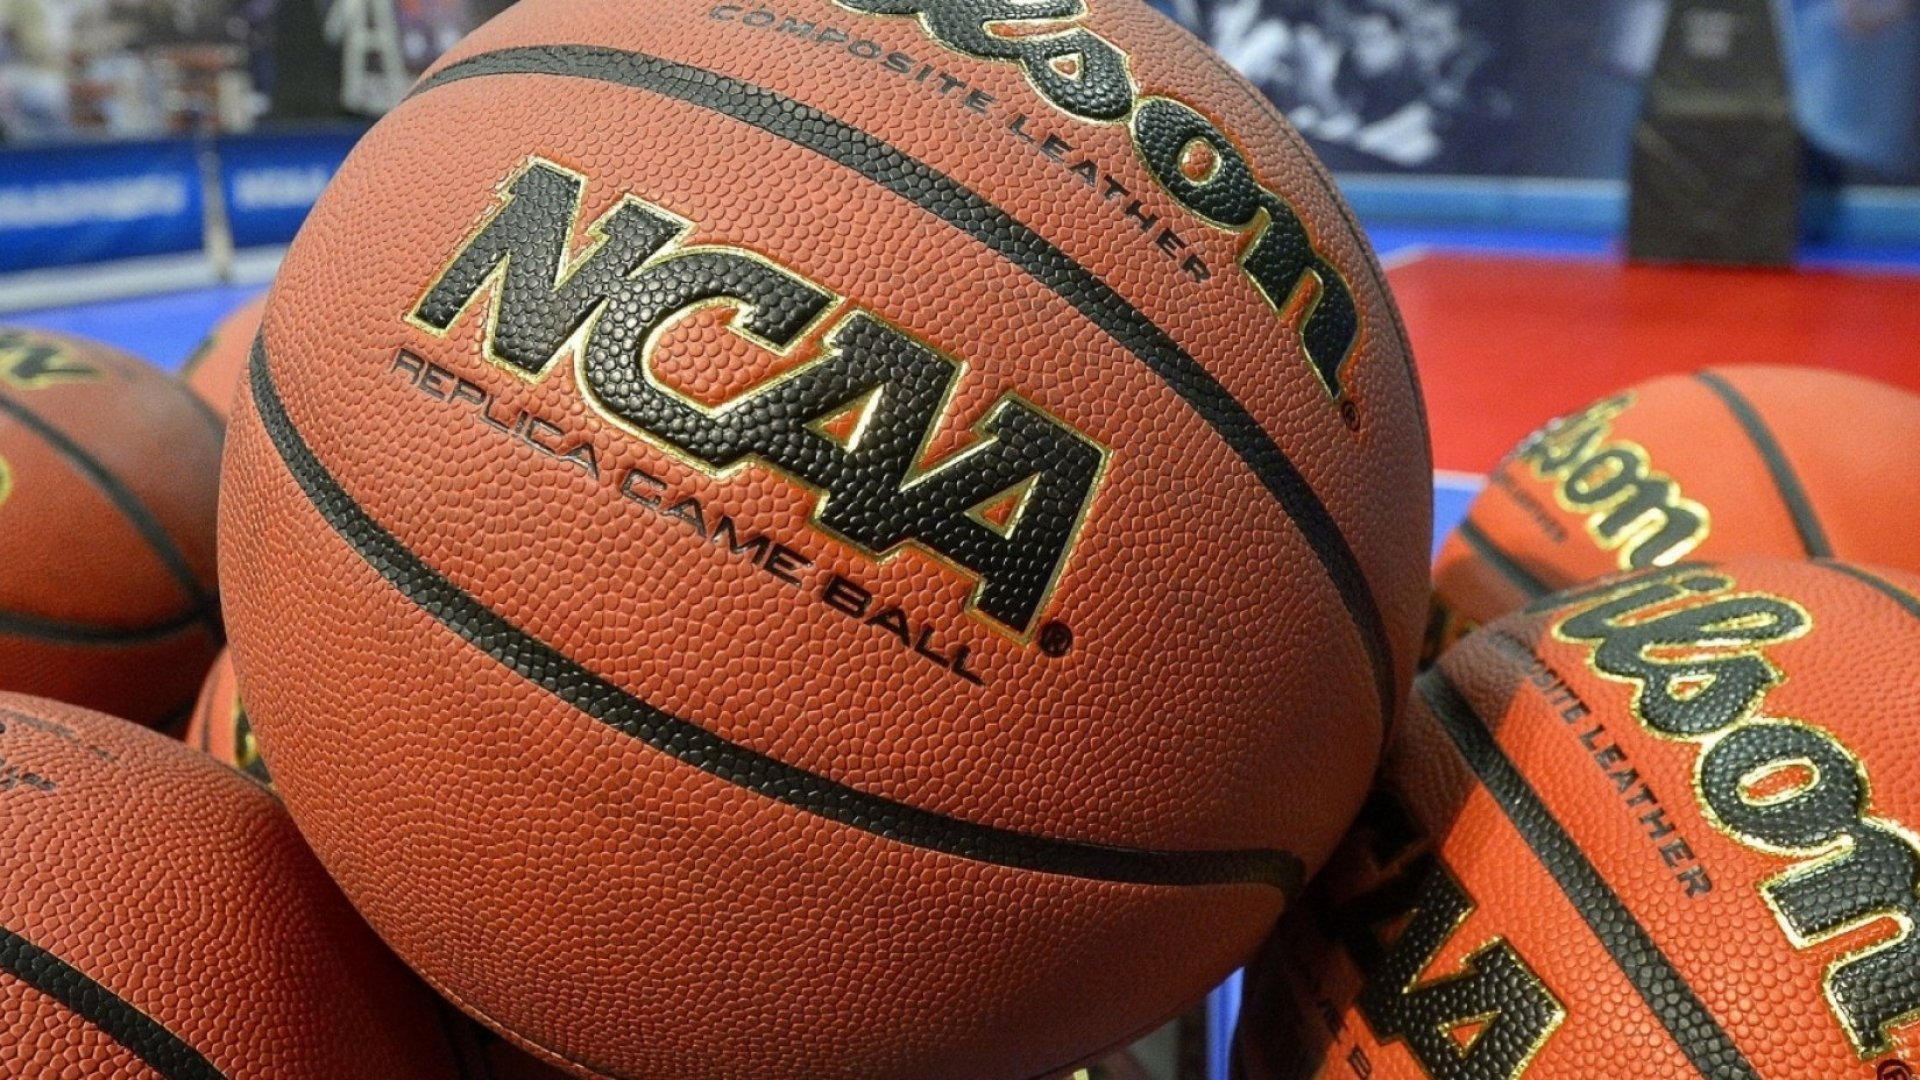 7 Winning Strategies for M&A March Madness